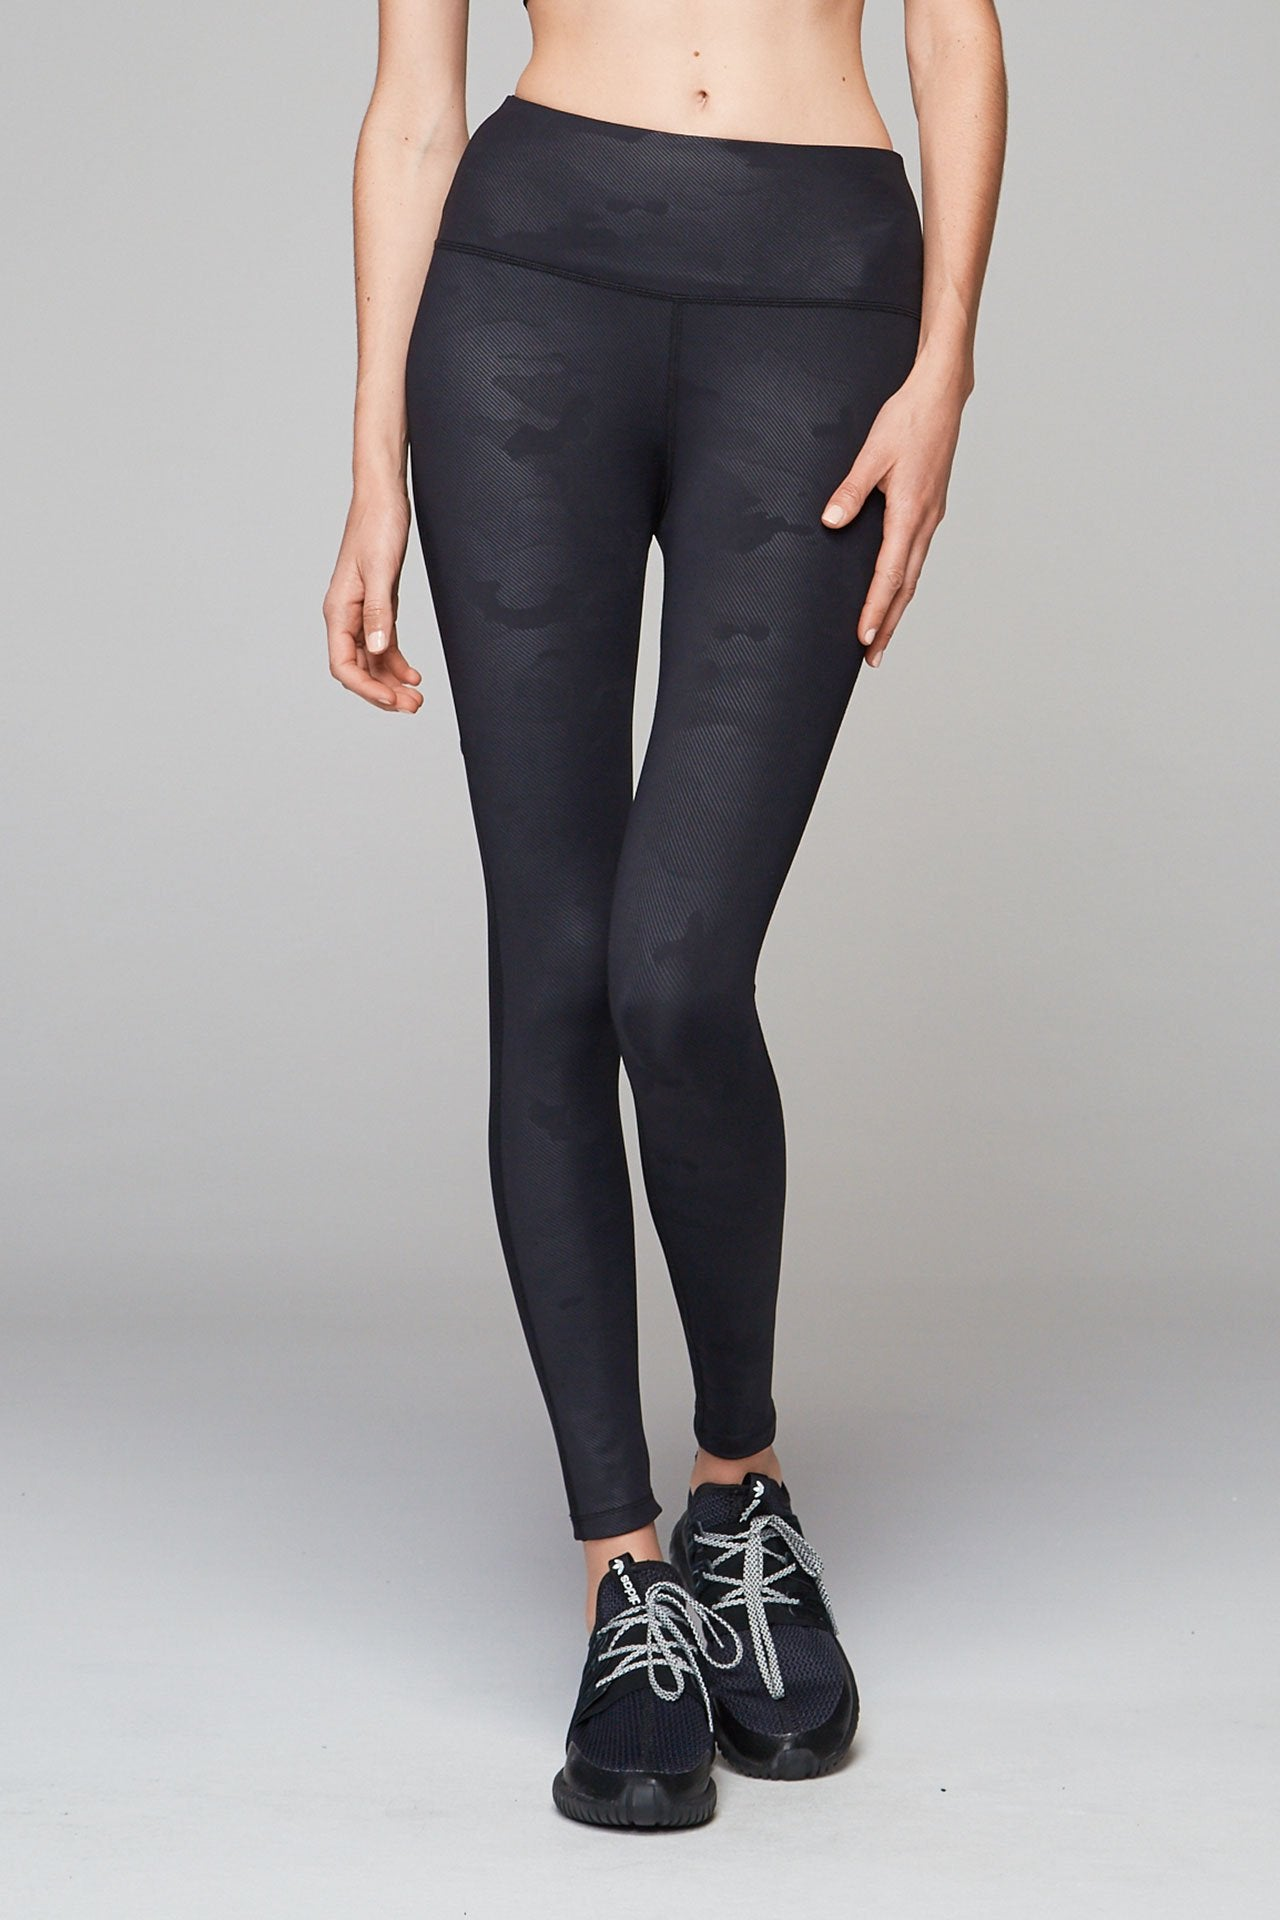 Varley Kingman Black Camo Tight - yApparel